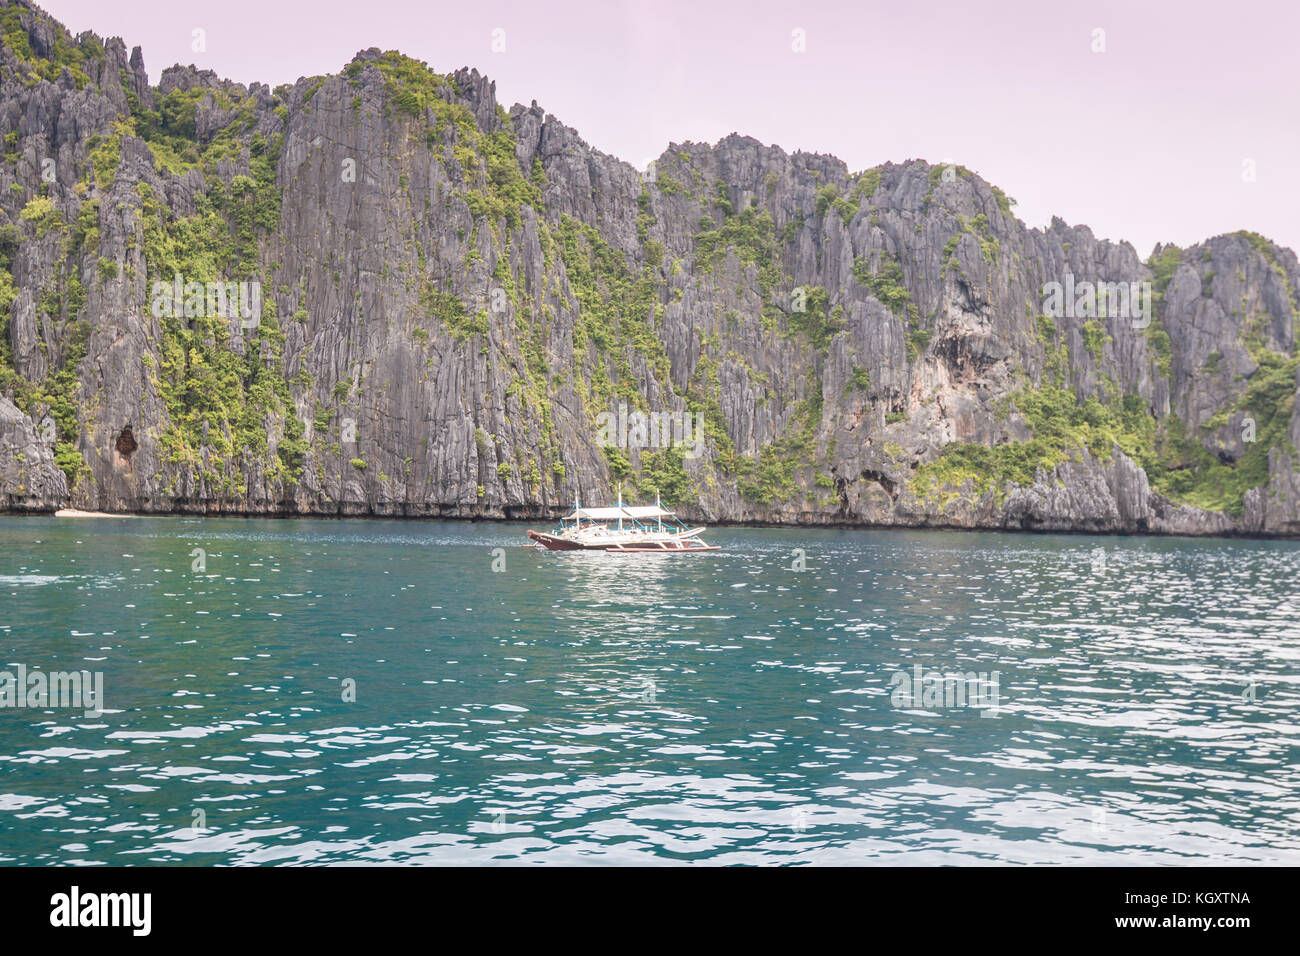 Rocks in El Nido Palawan Philippines - Stock Image